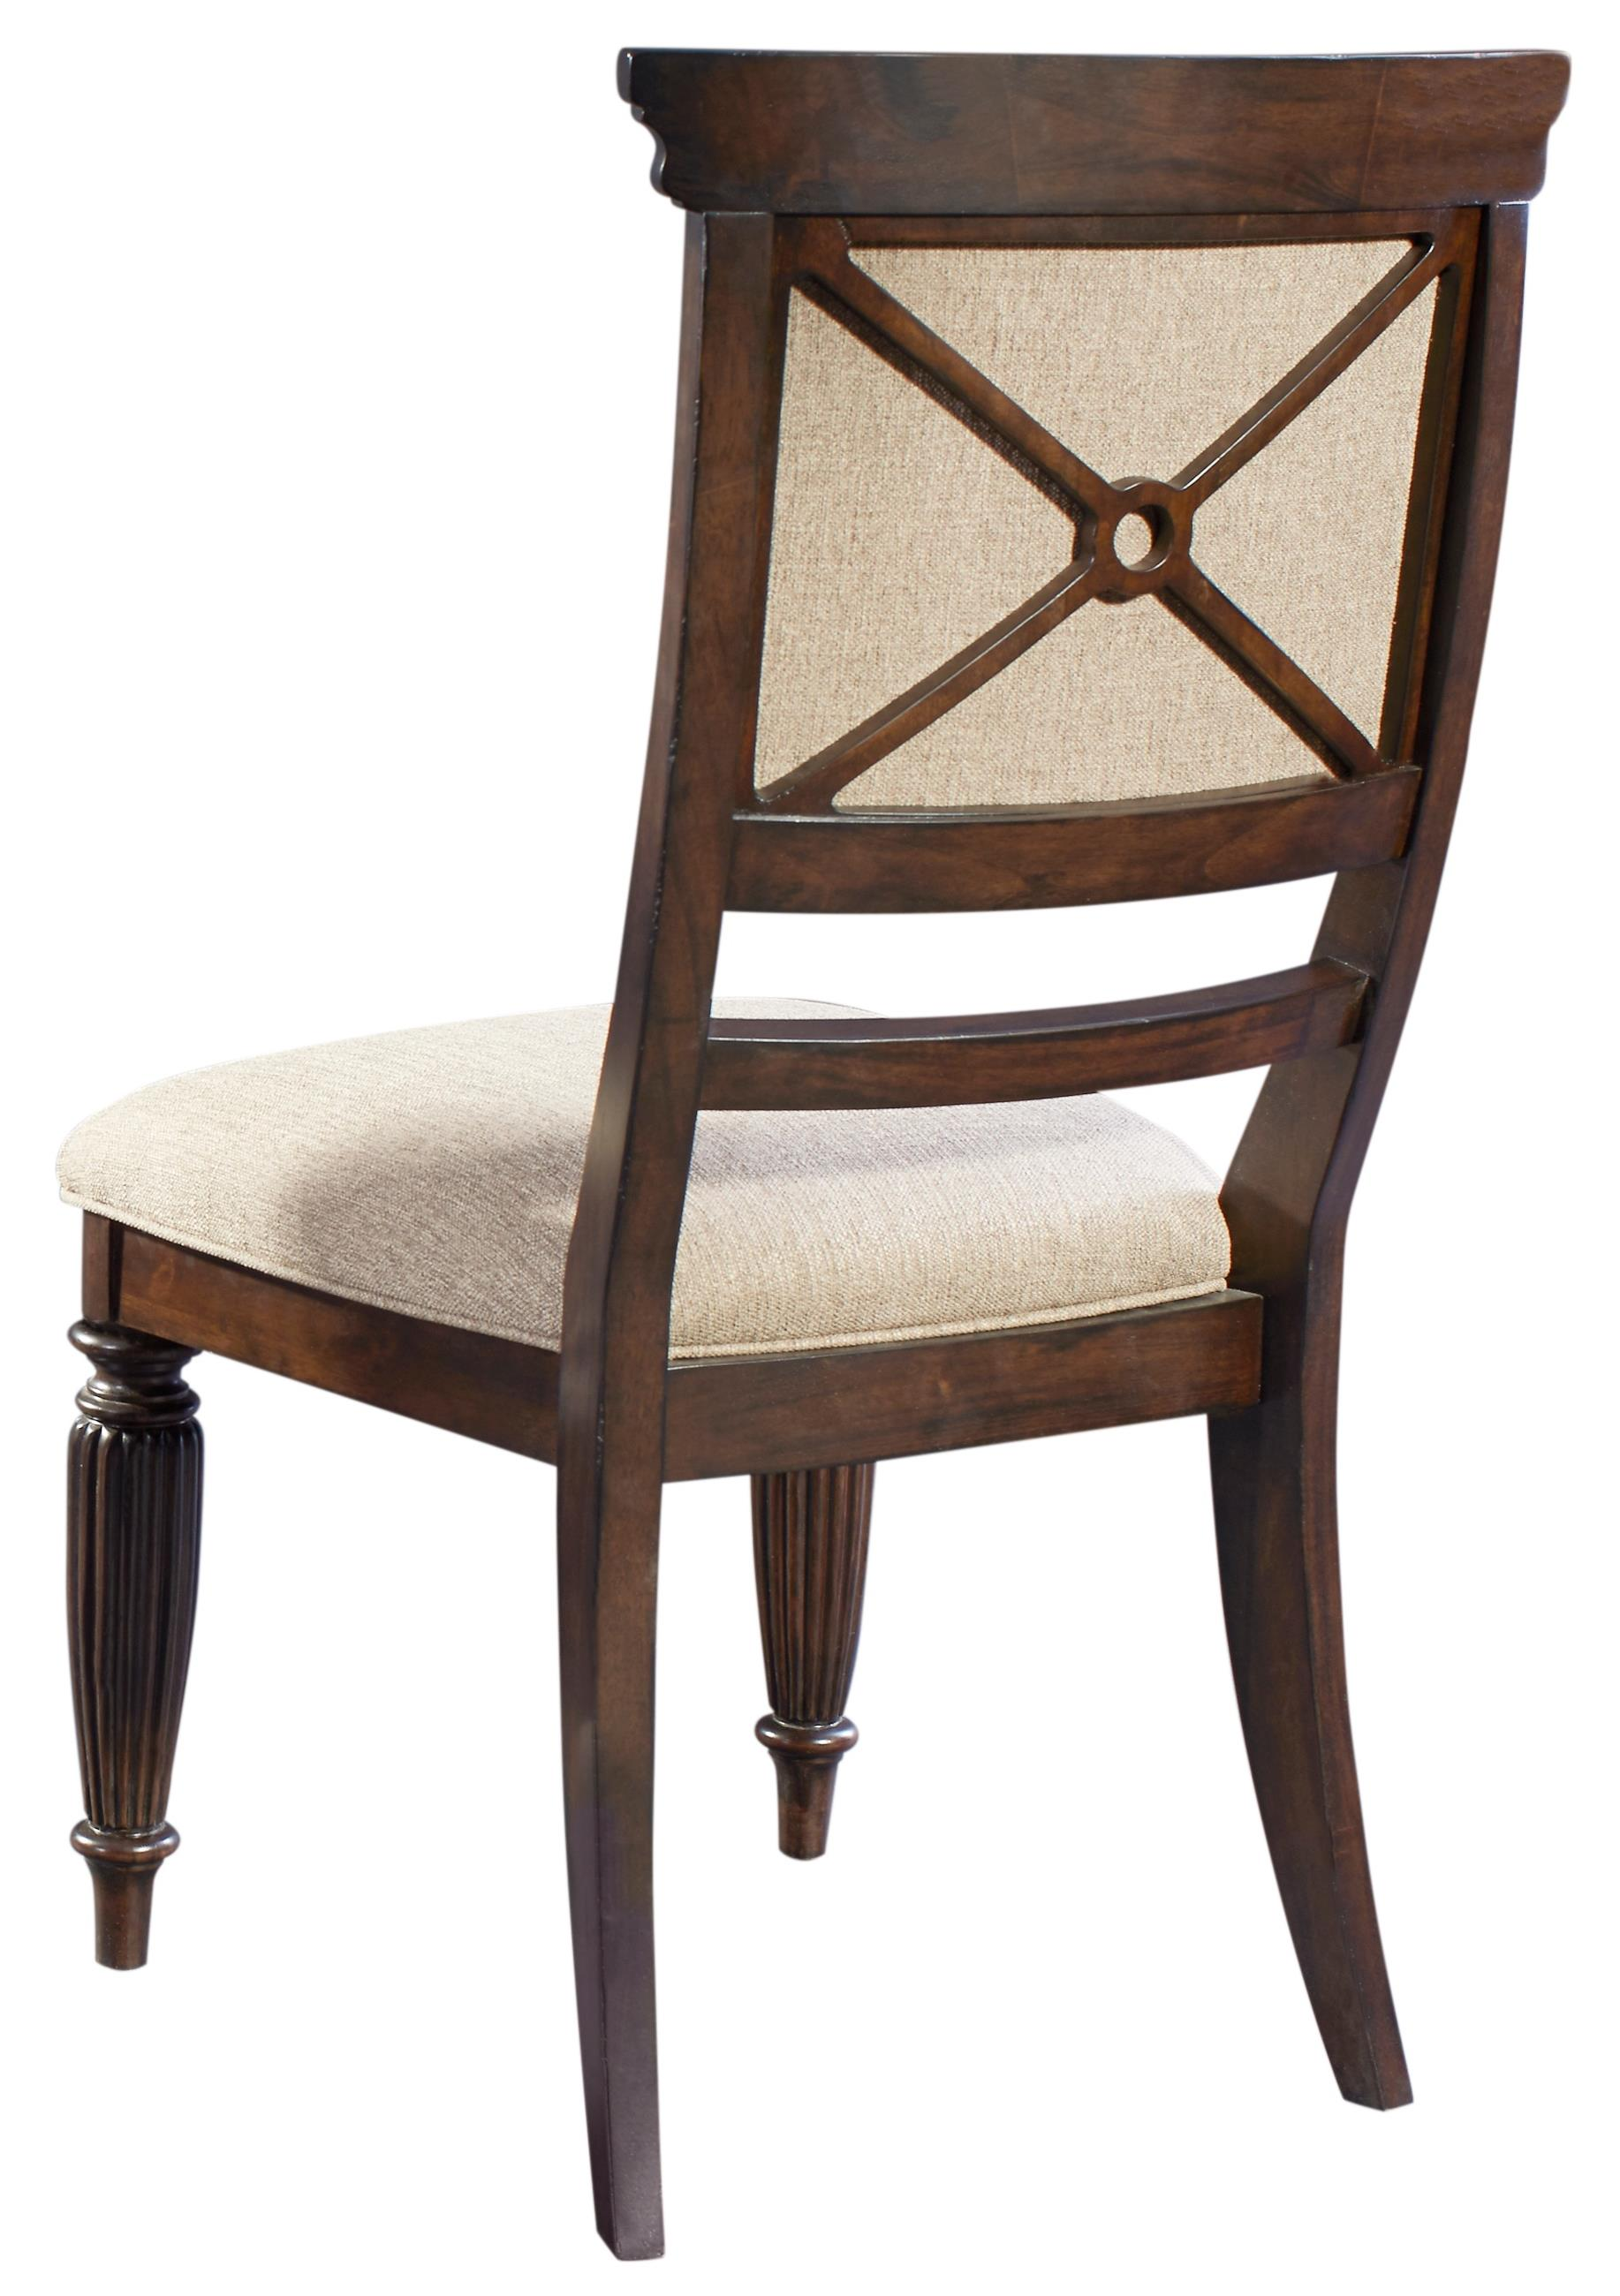 Broyhill Furniture Jessa Upholstered Seat and Back Side Chair - Item Number: 4980-583